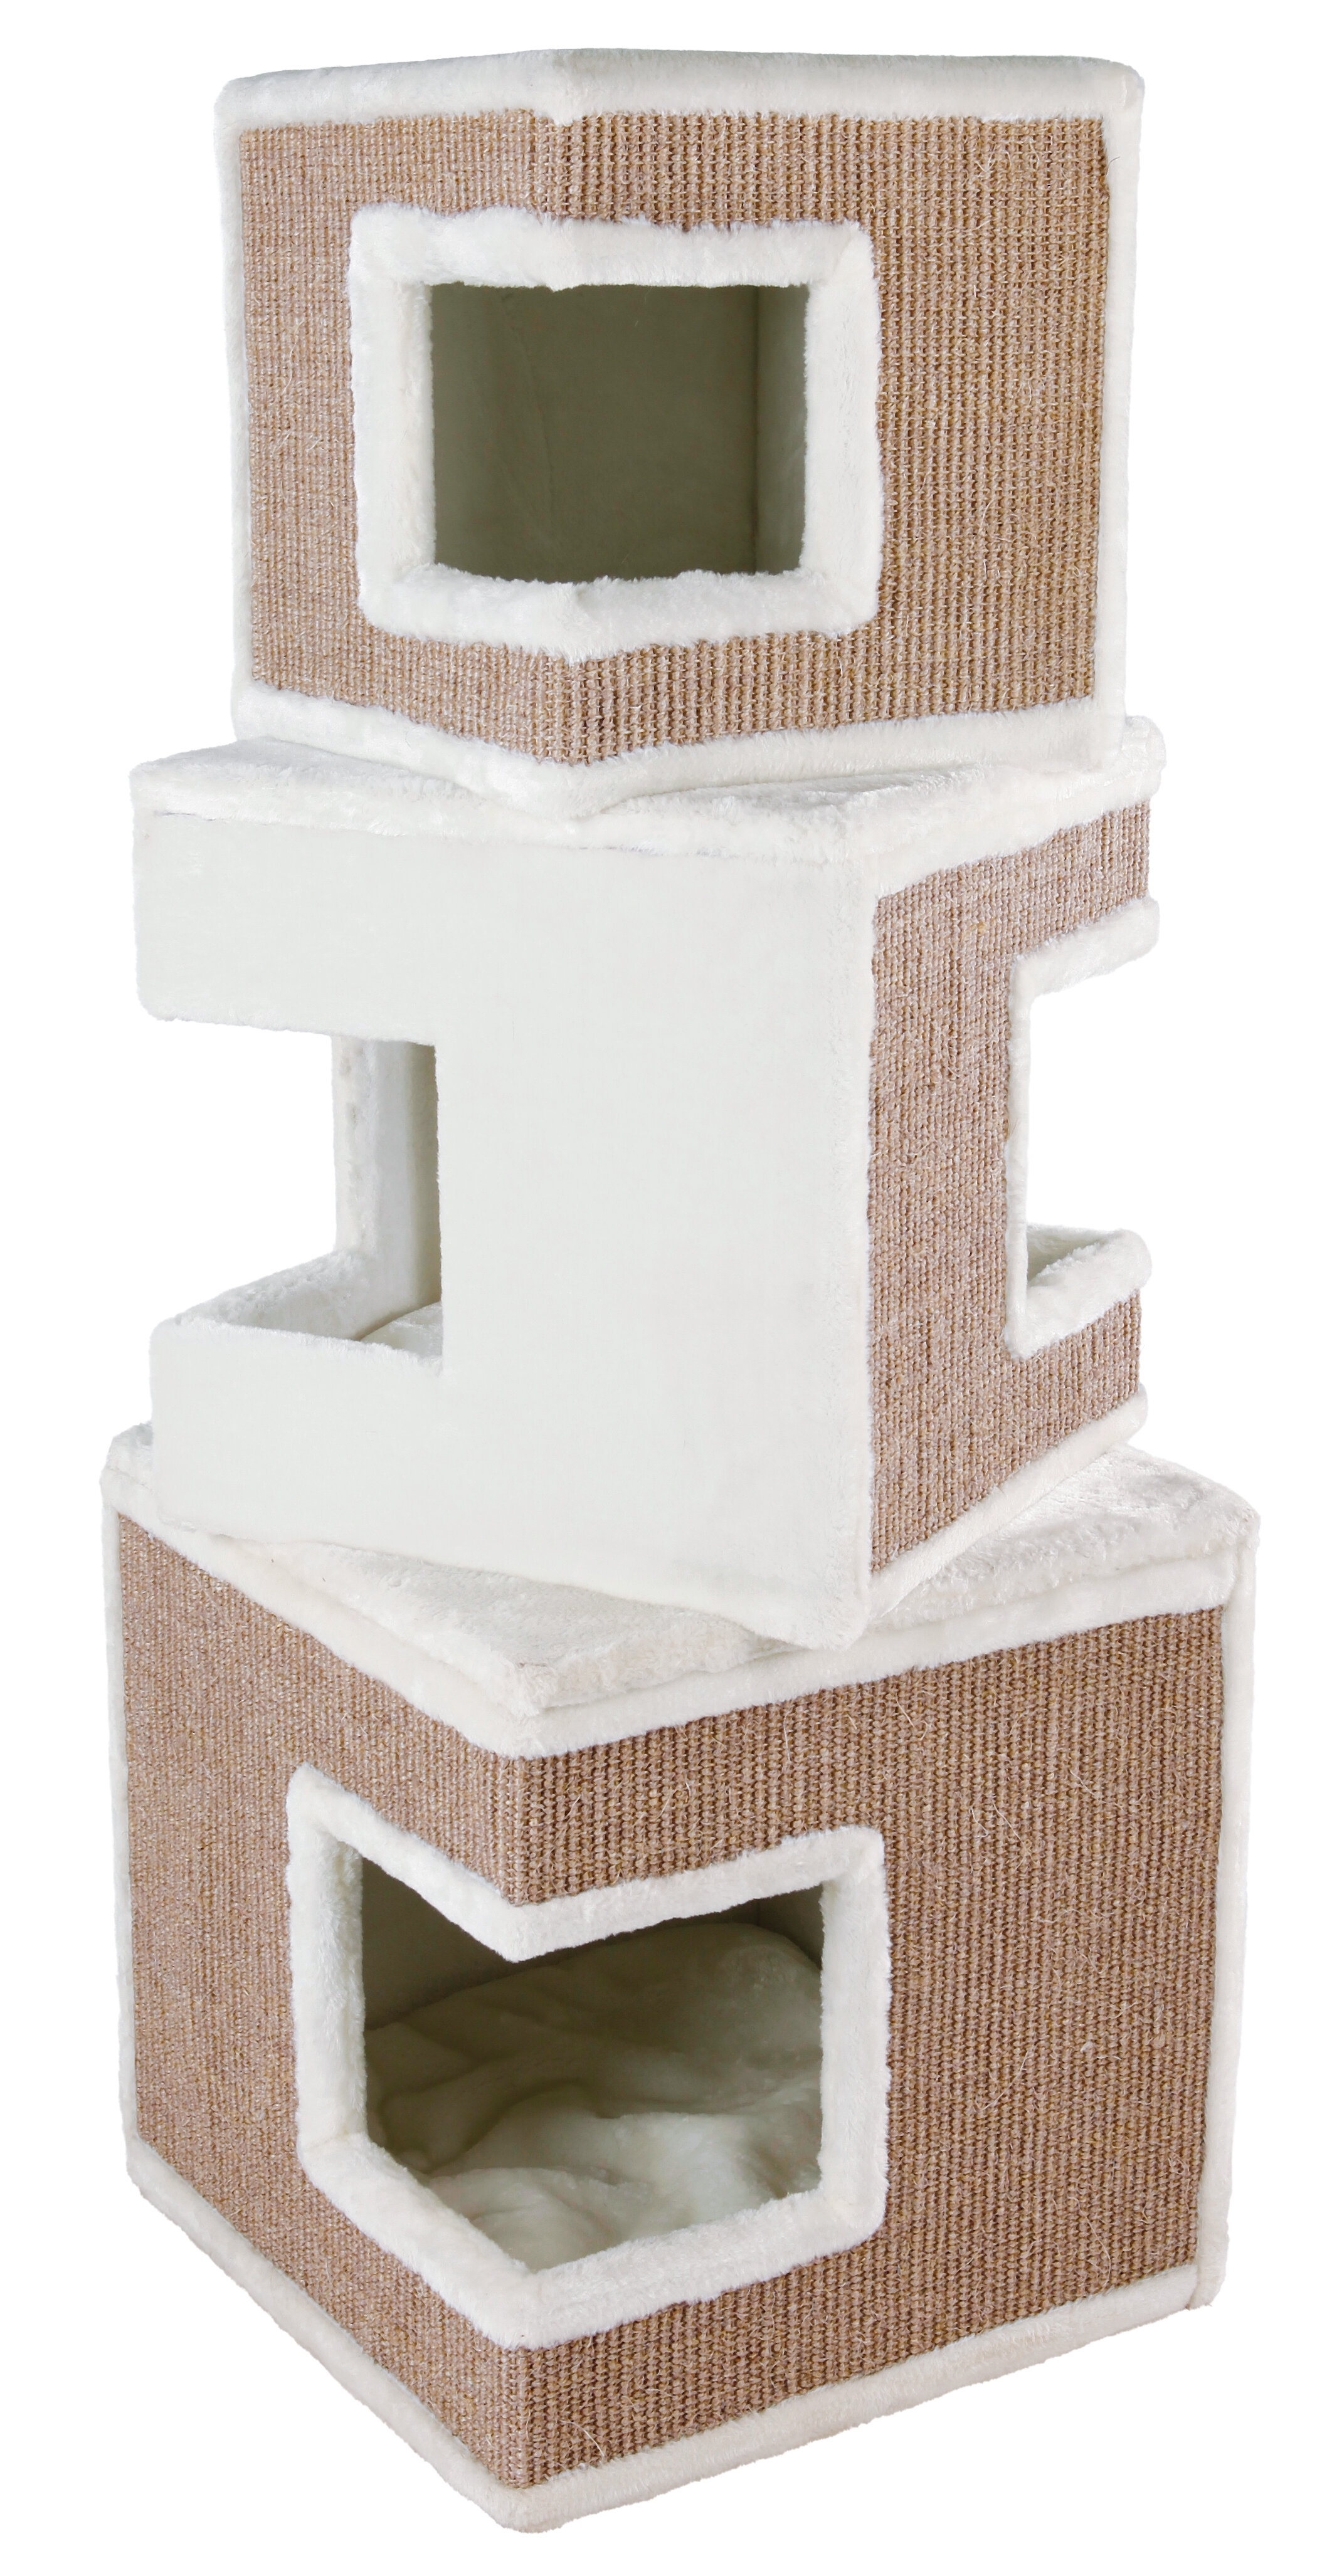 ct qpets cat store tree magic furniture mountain